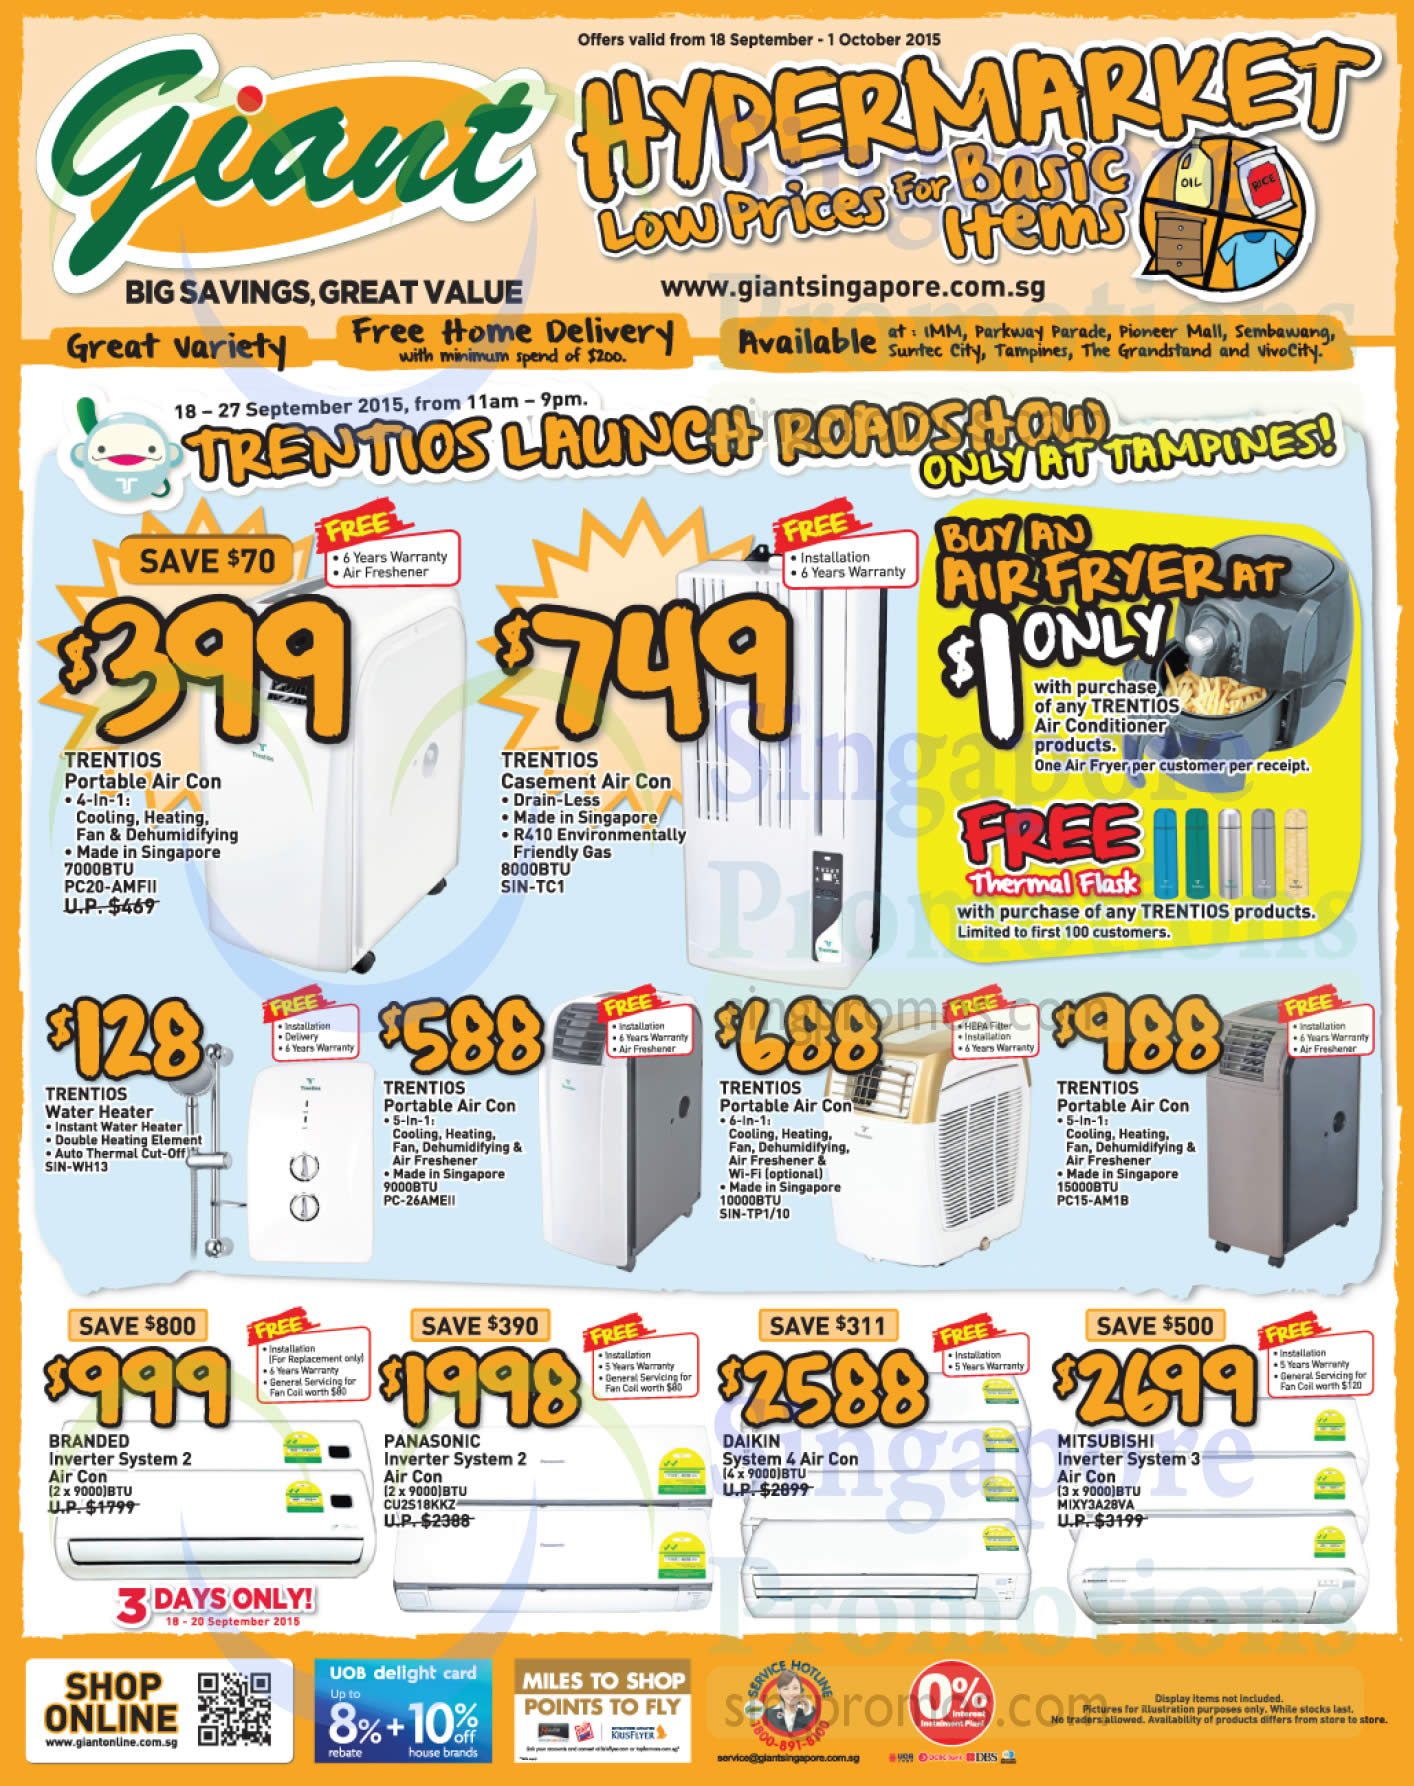 Giant Hypermarket Europace Amp Trentios Appliances Offers 19